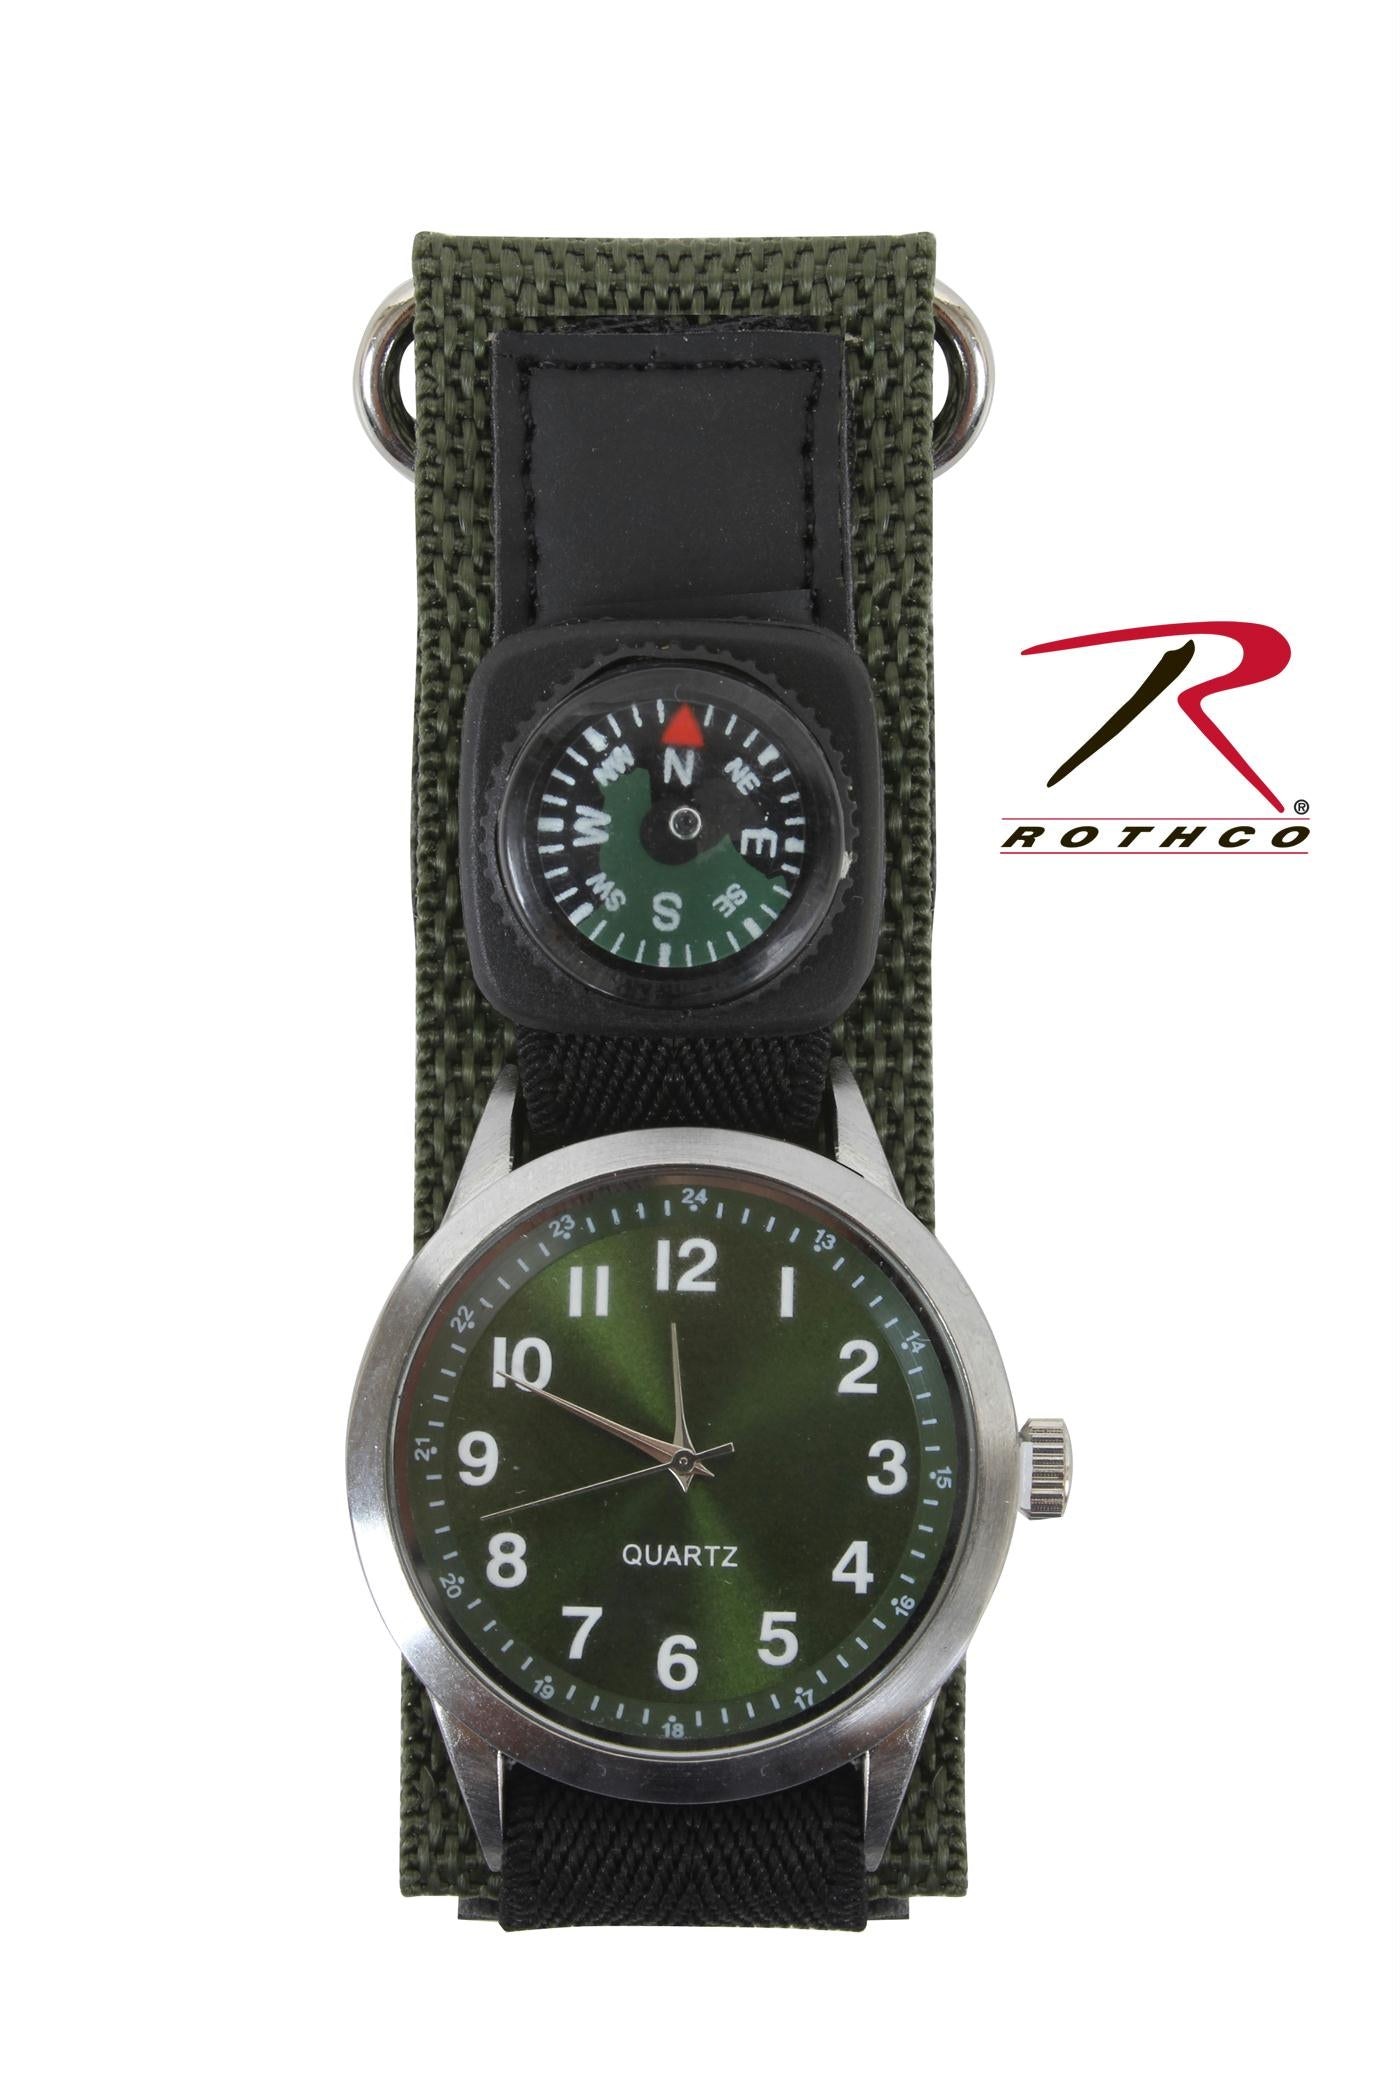 Rothco Watch With Compass-Olive Drab